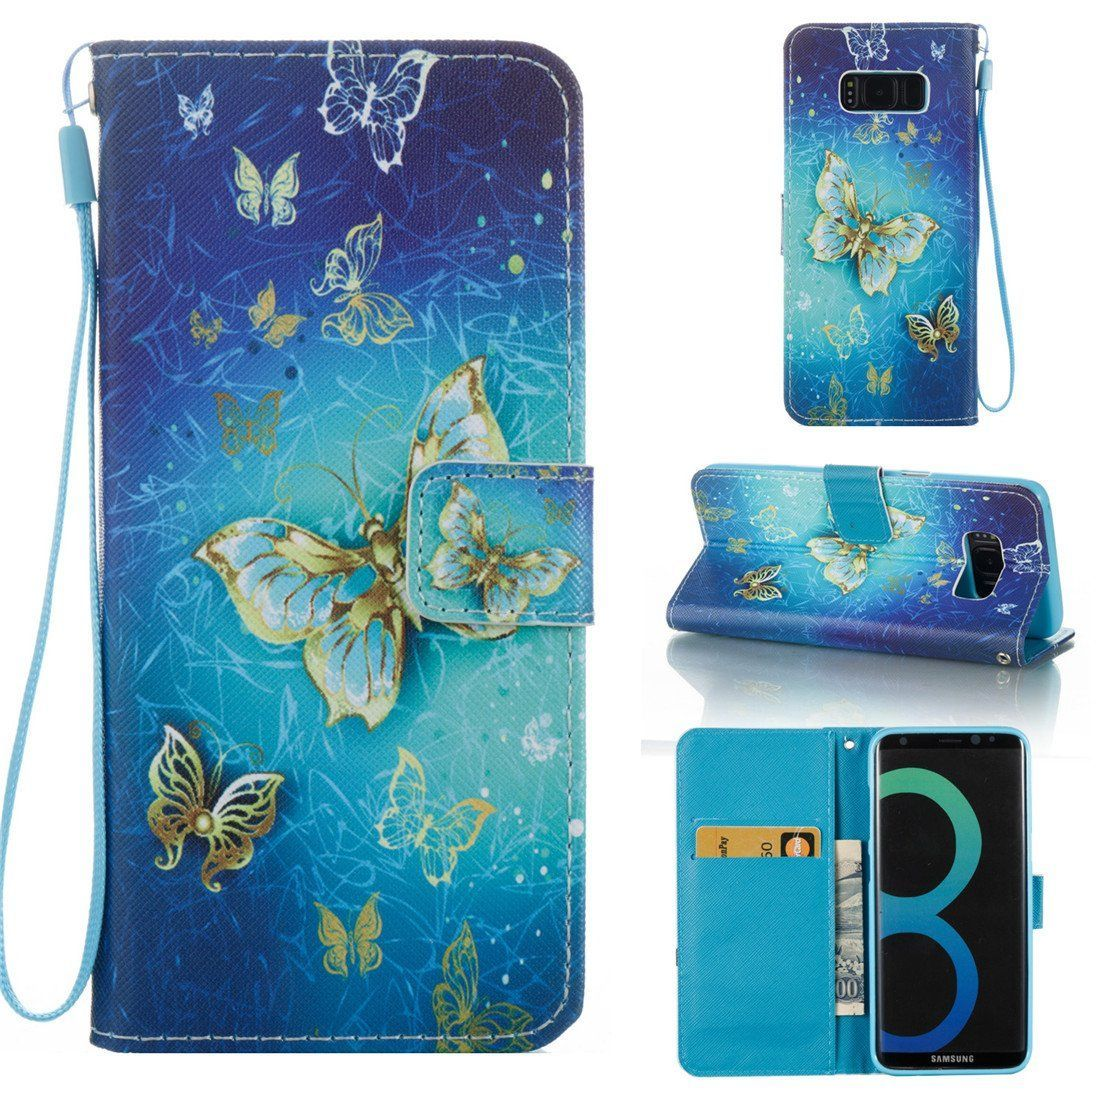 Galaxy S8 Case, Love Sound [Gold Butterfly] [Wrist Strap] [Stand Function] Luxury PU Leather Wallet Case Flip Cover Built-in Card Slots for Samsung Galaxy S8 (2017). Note:This case is fit for Samsung Galaxy S8 (2017) [Not fit for Samsung Galaxy S8 Plus],